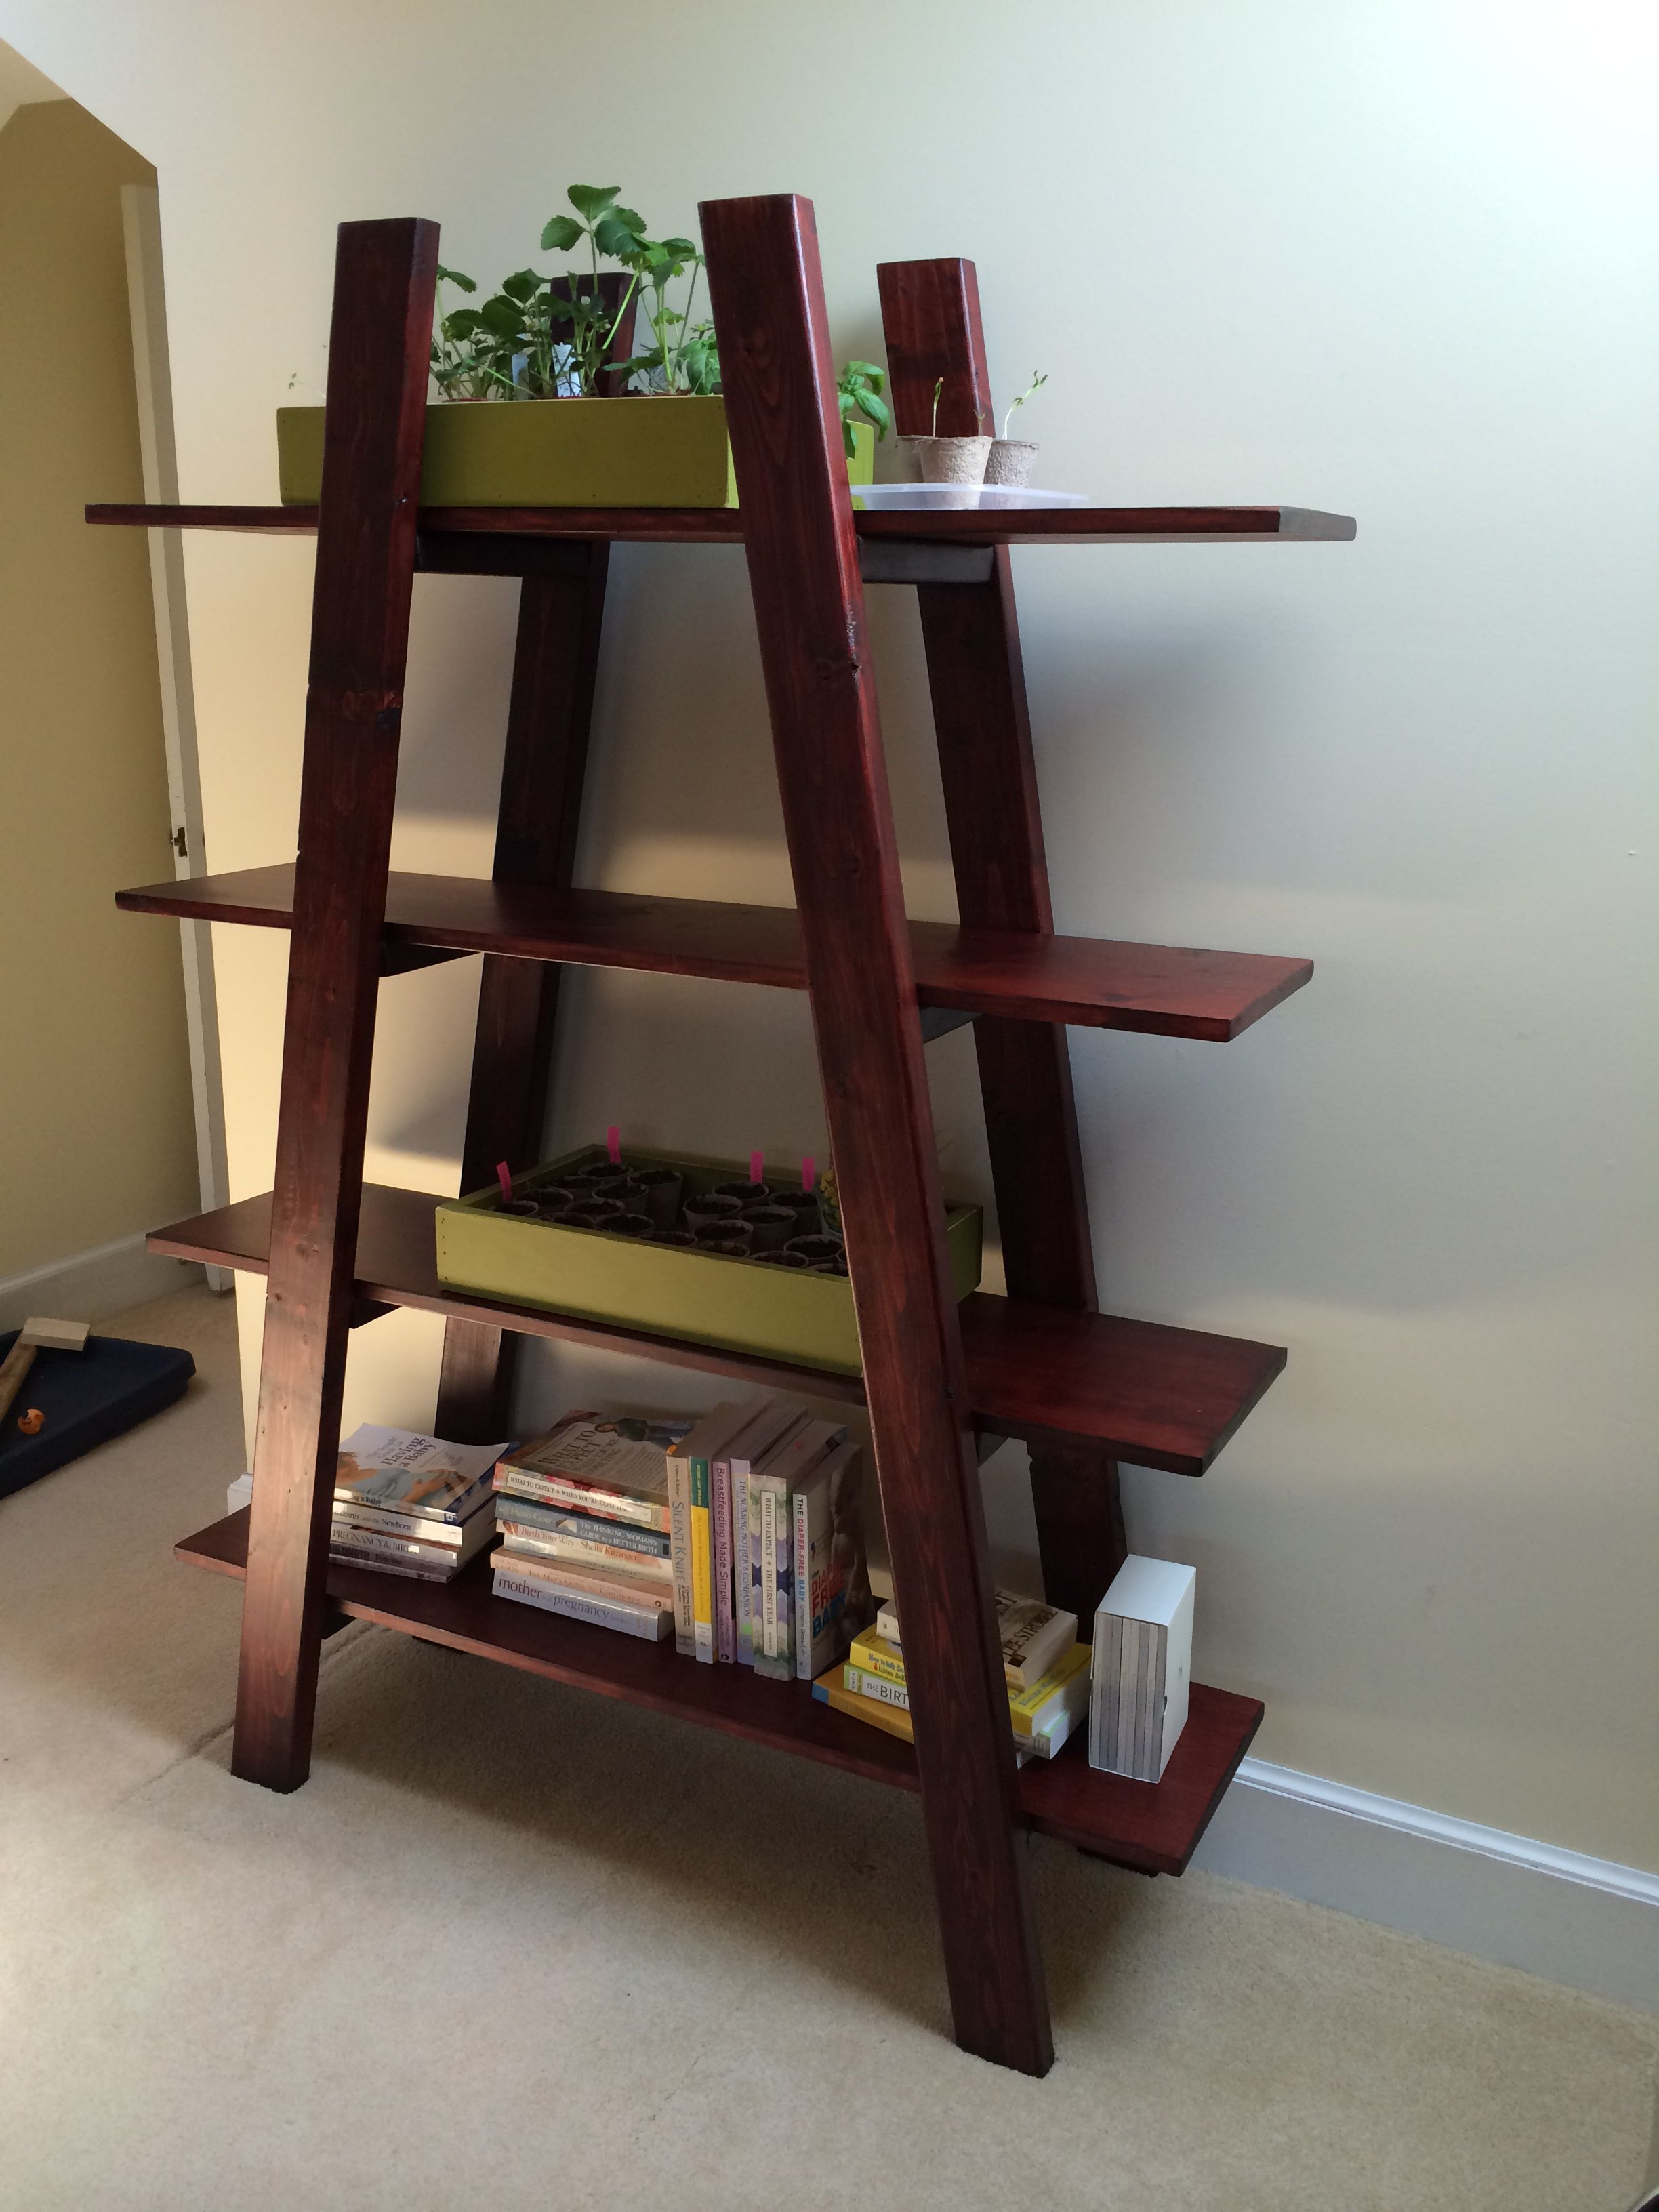 New bookshelf for our master. Perfect for growing seedlings under skylight. In love!